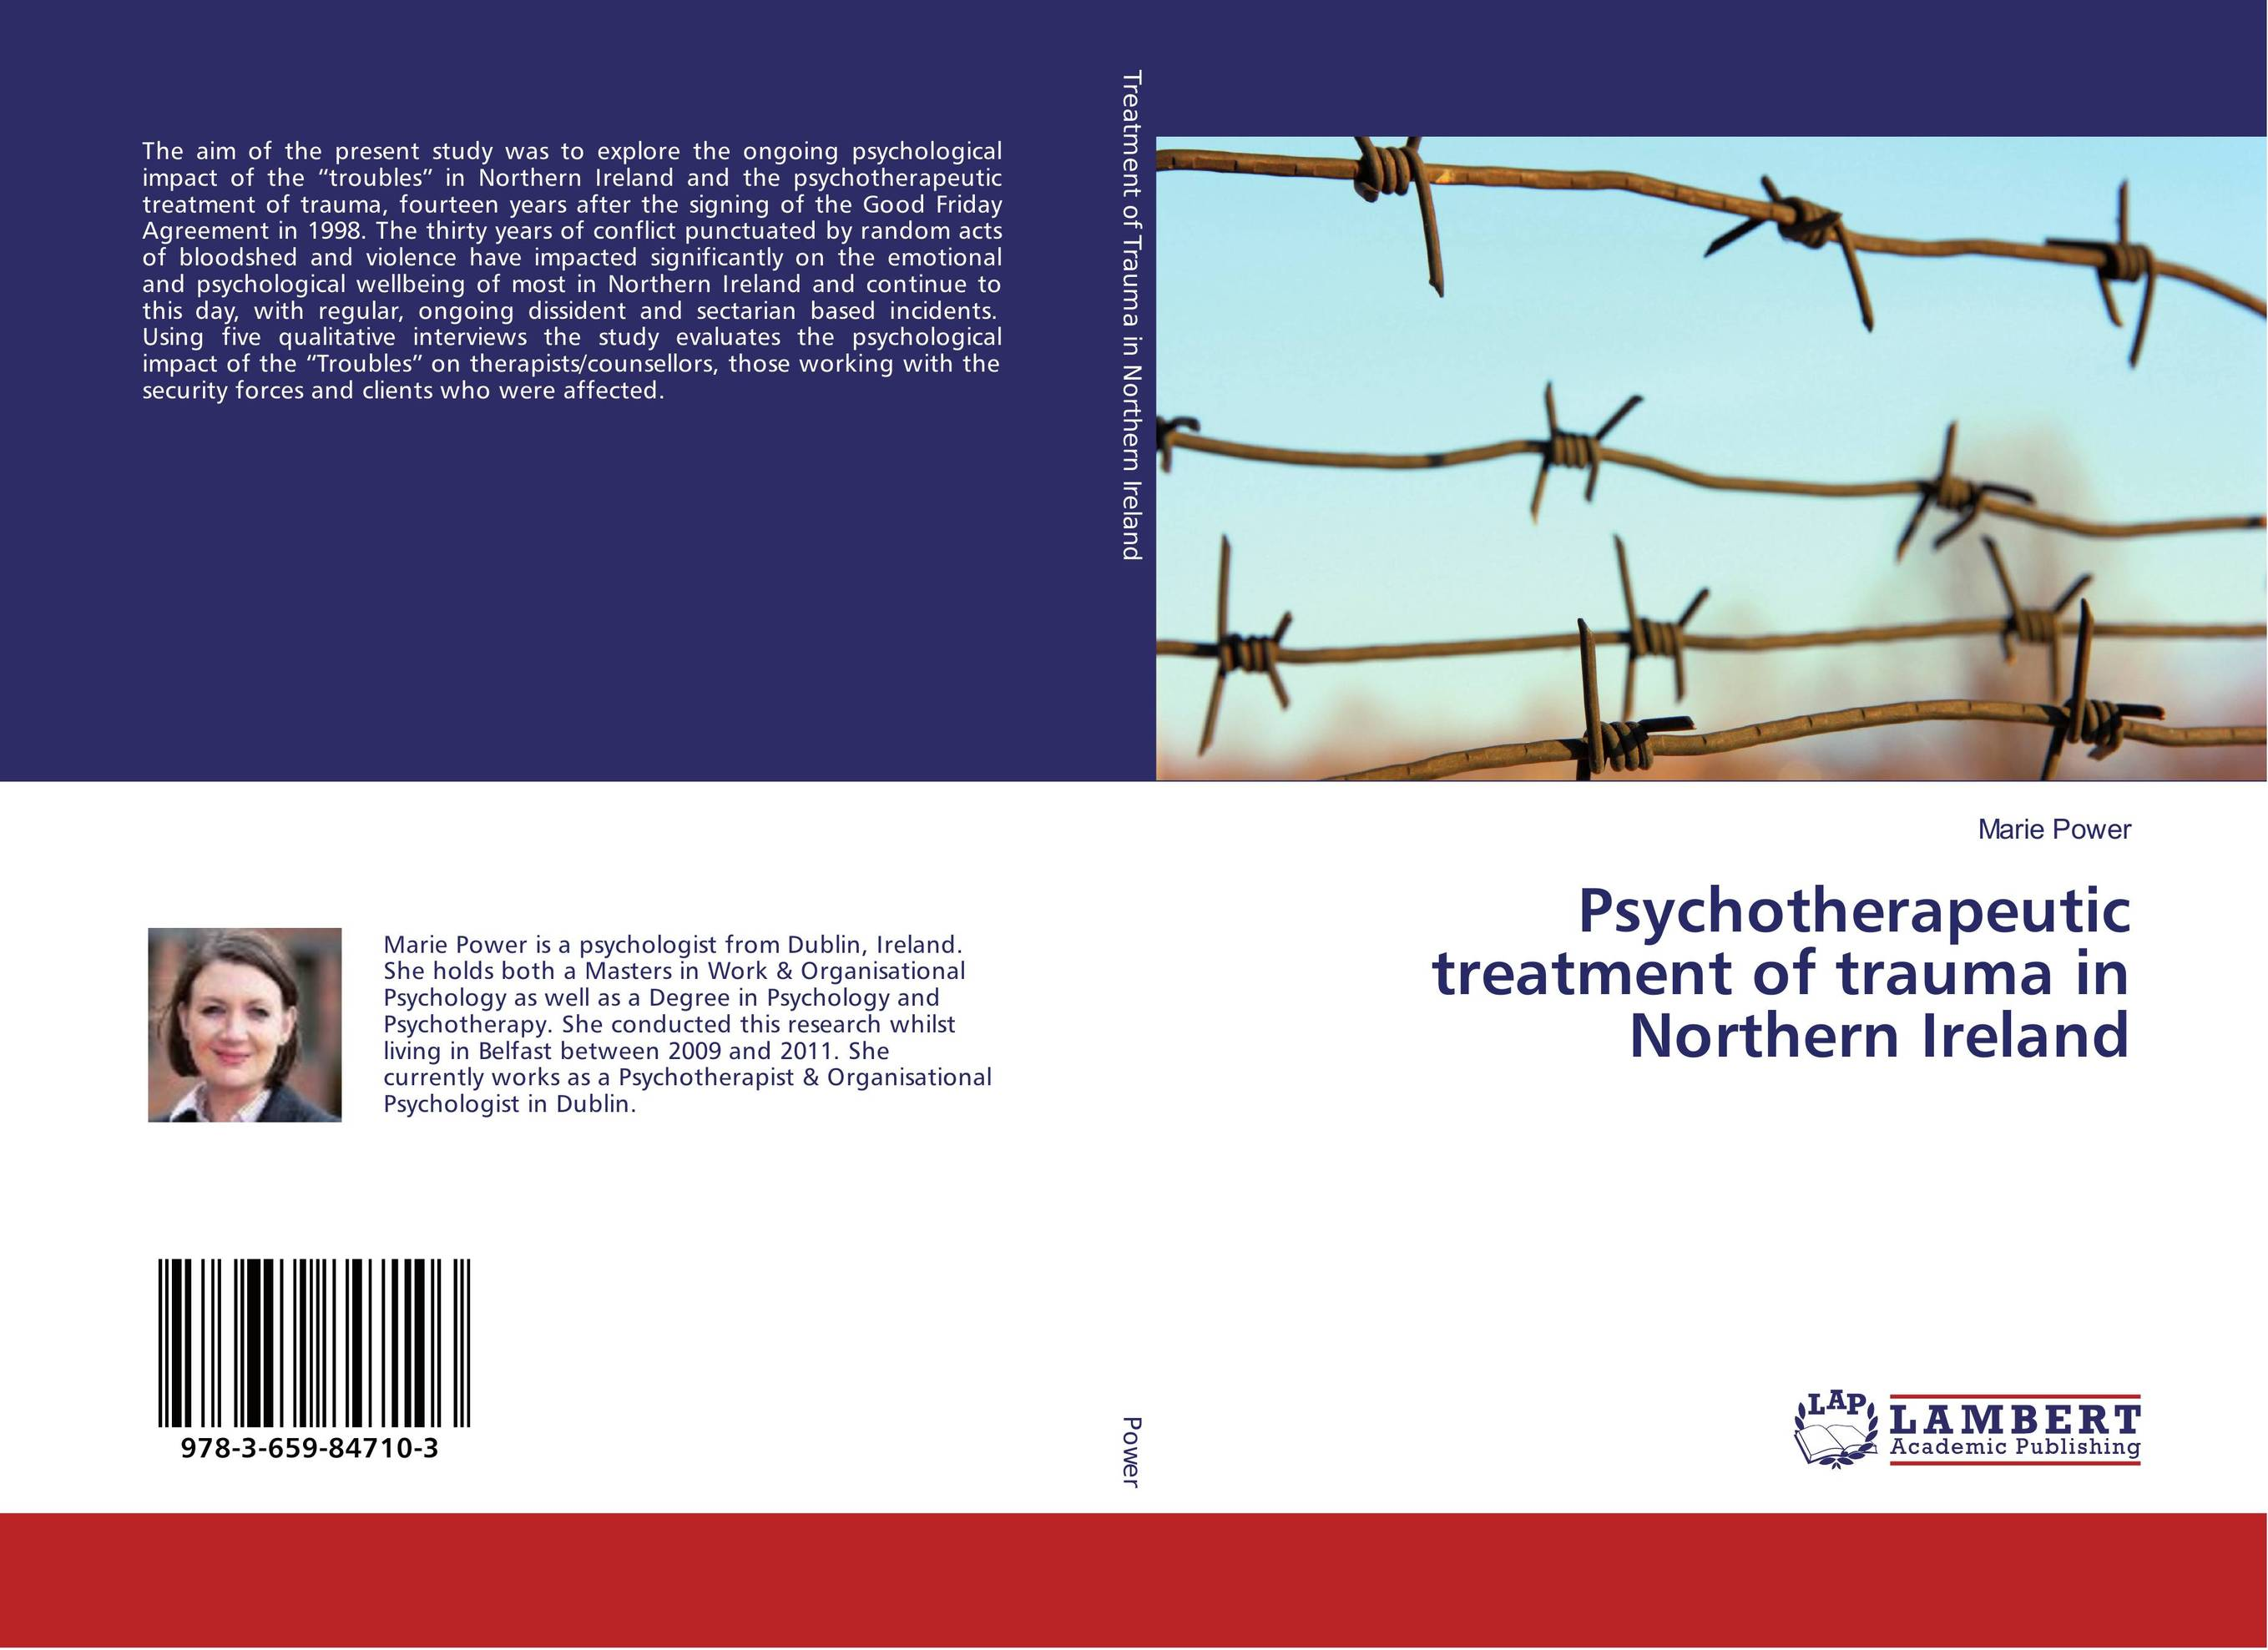 Psychotherapeutic treatment of trauma in Northern Ireland gregorian masters of chant moments of peace in ireland